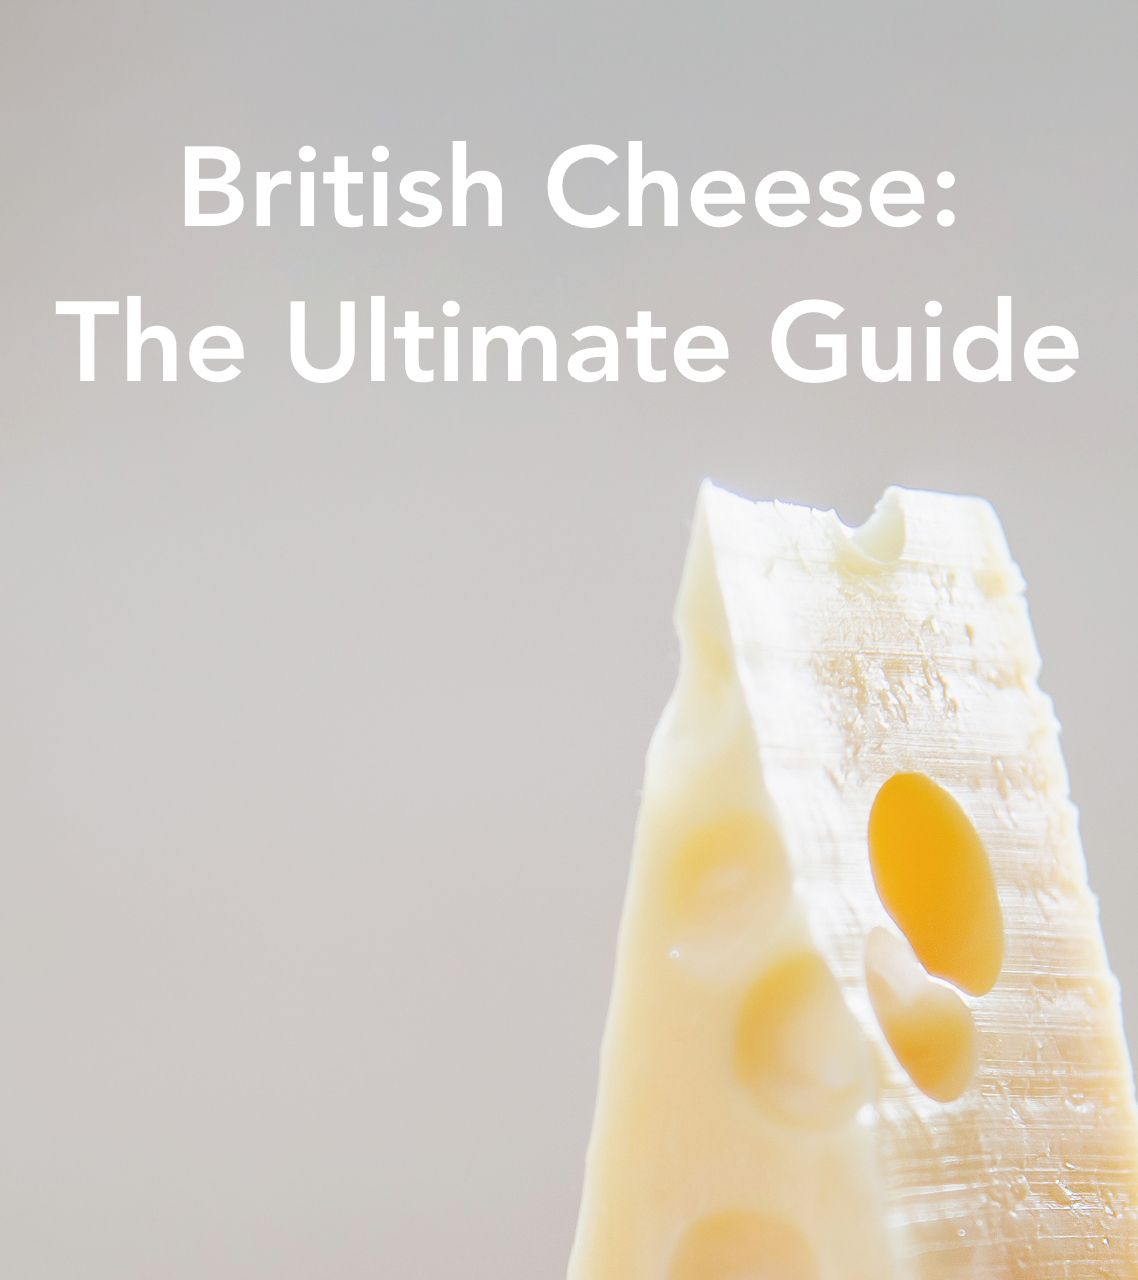 British Cheese: The Ultimate Guide - Discover more about the best British Cheeses around